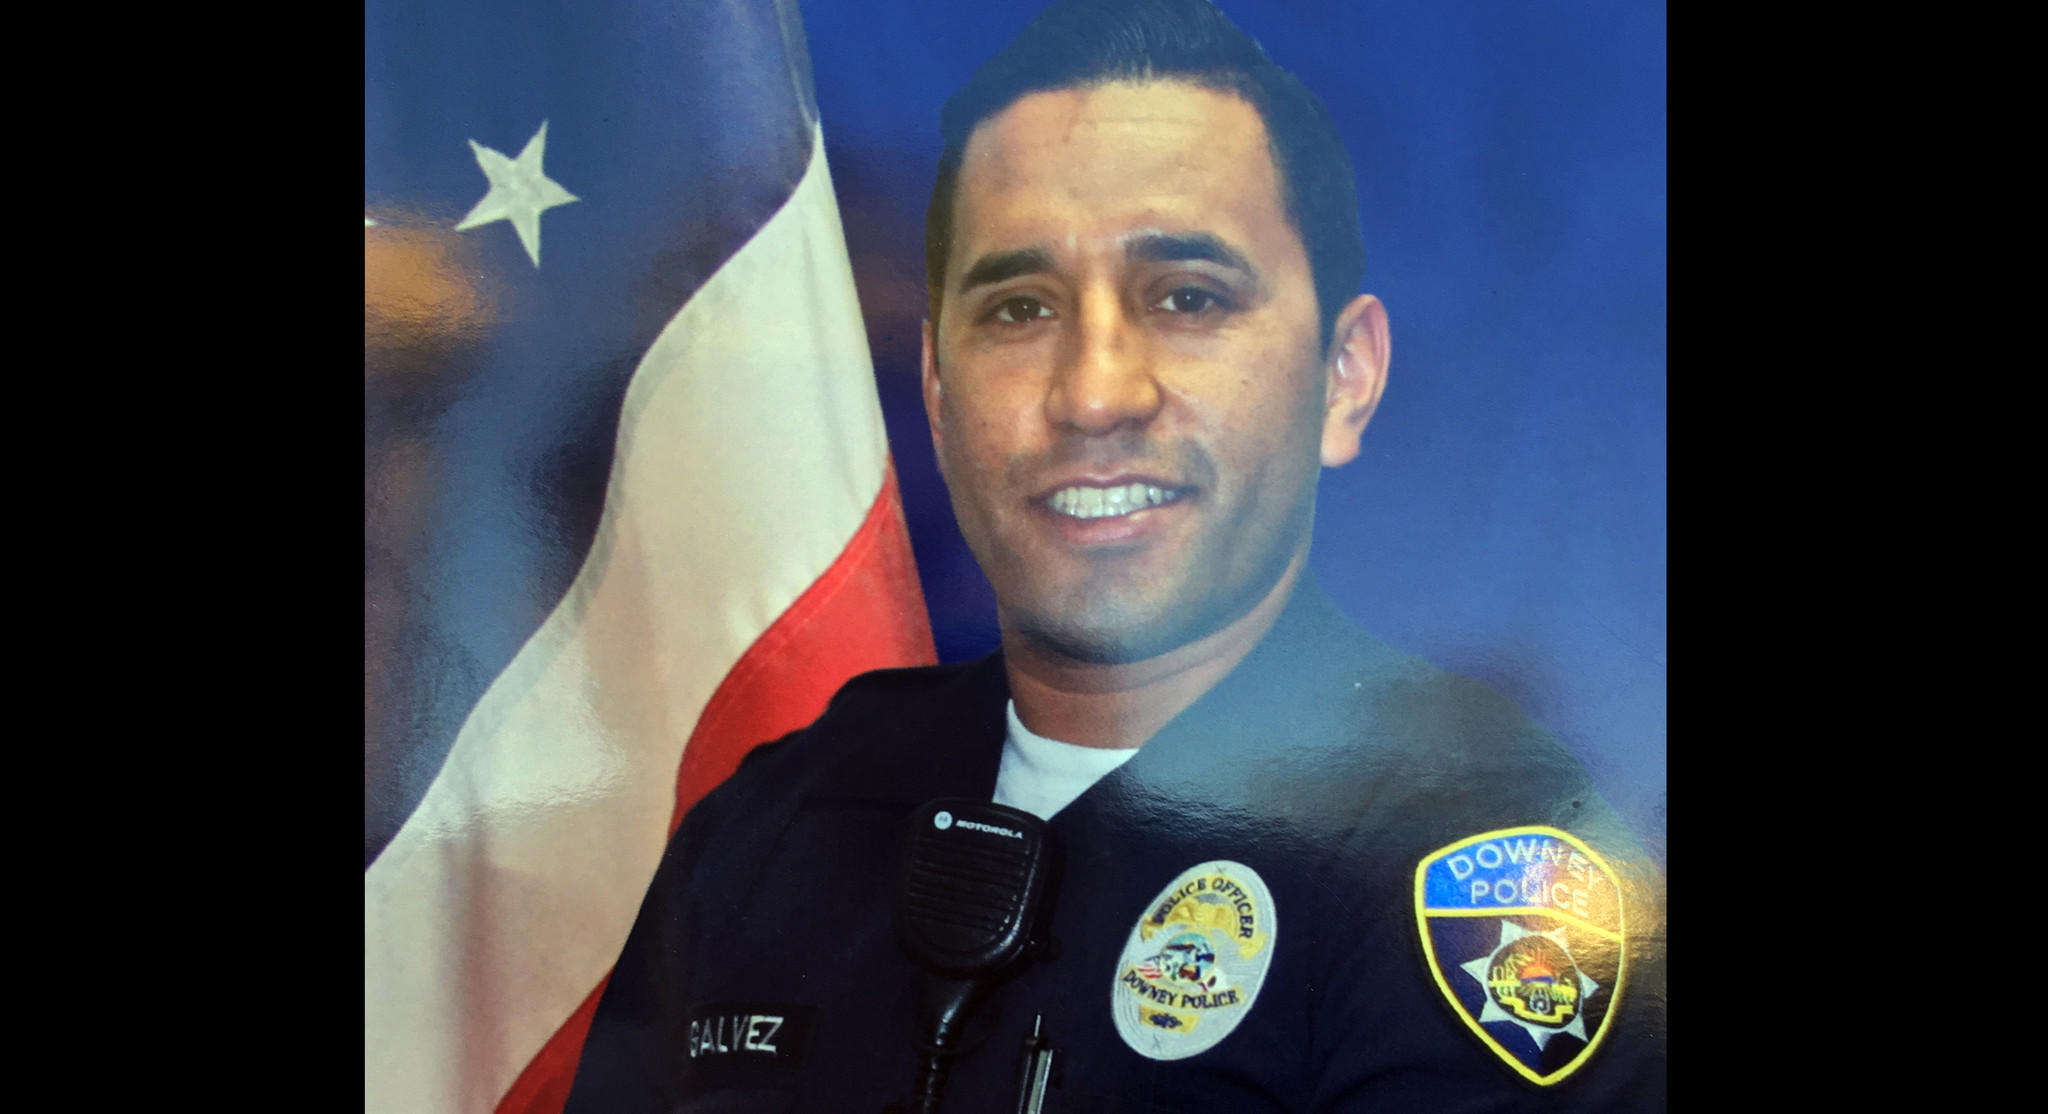 downey officer fatally shot in his car was targeted authorities downey officer fatally shot in his car was targeted authorities say la times